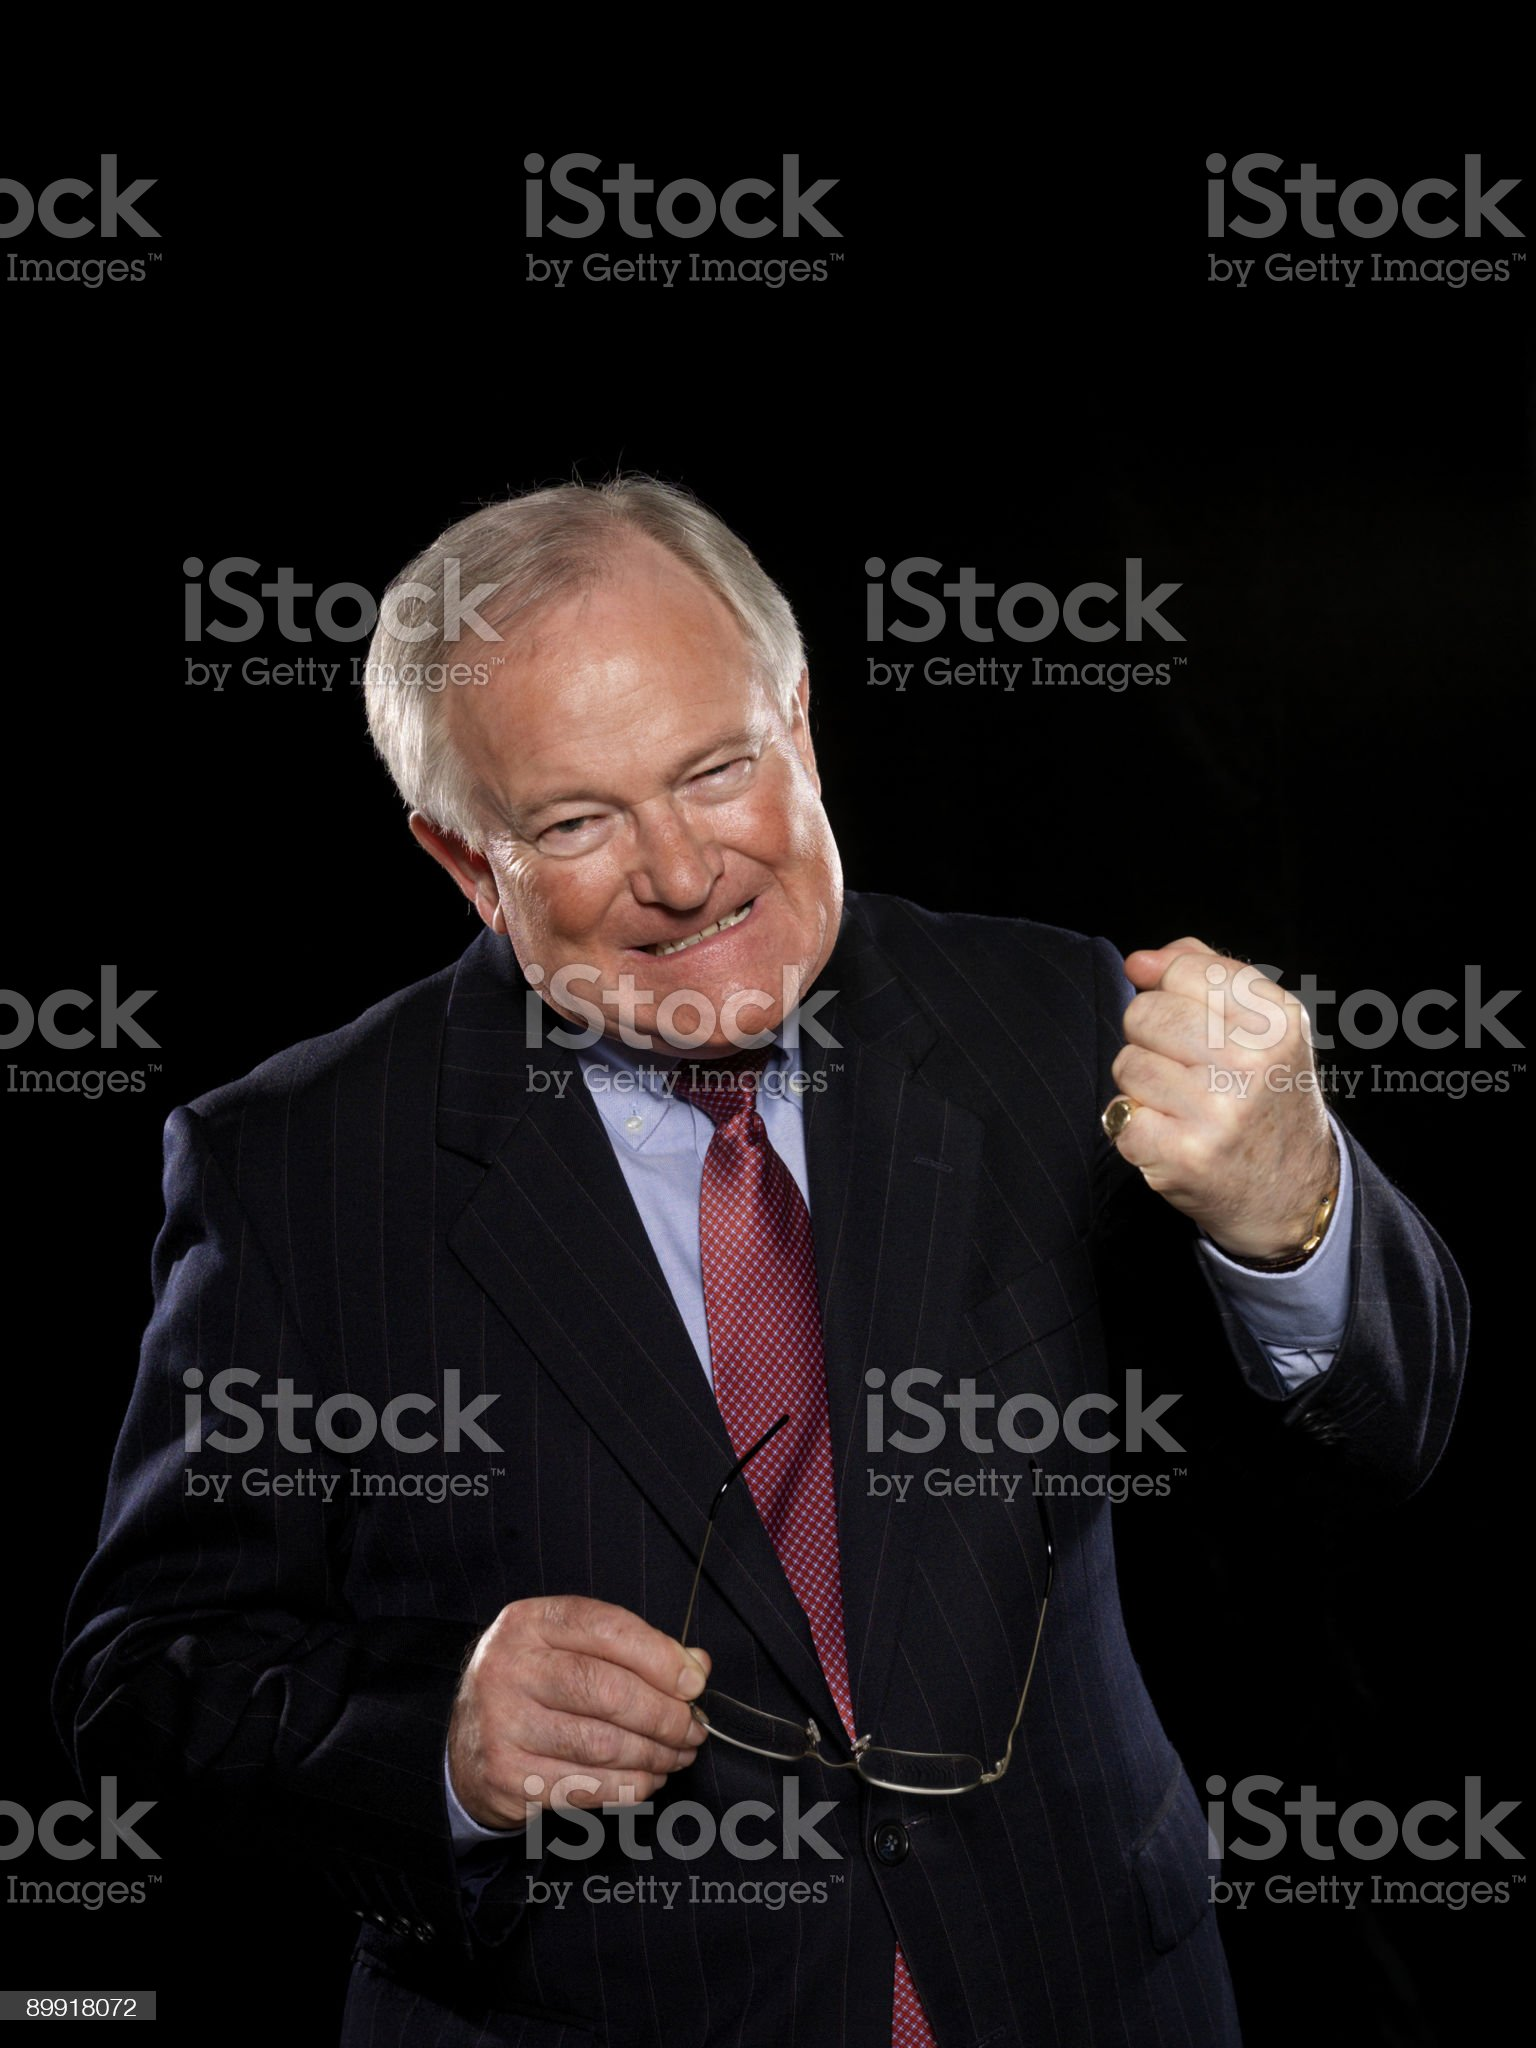 Businessman with clenched fist royalty-free stock photo